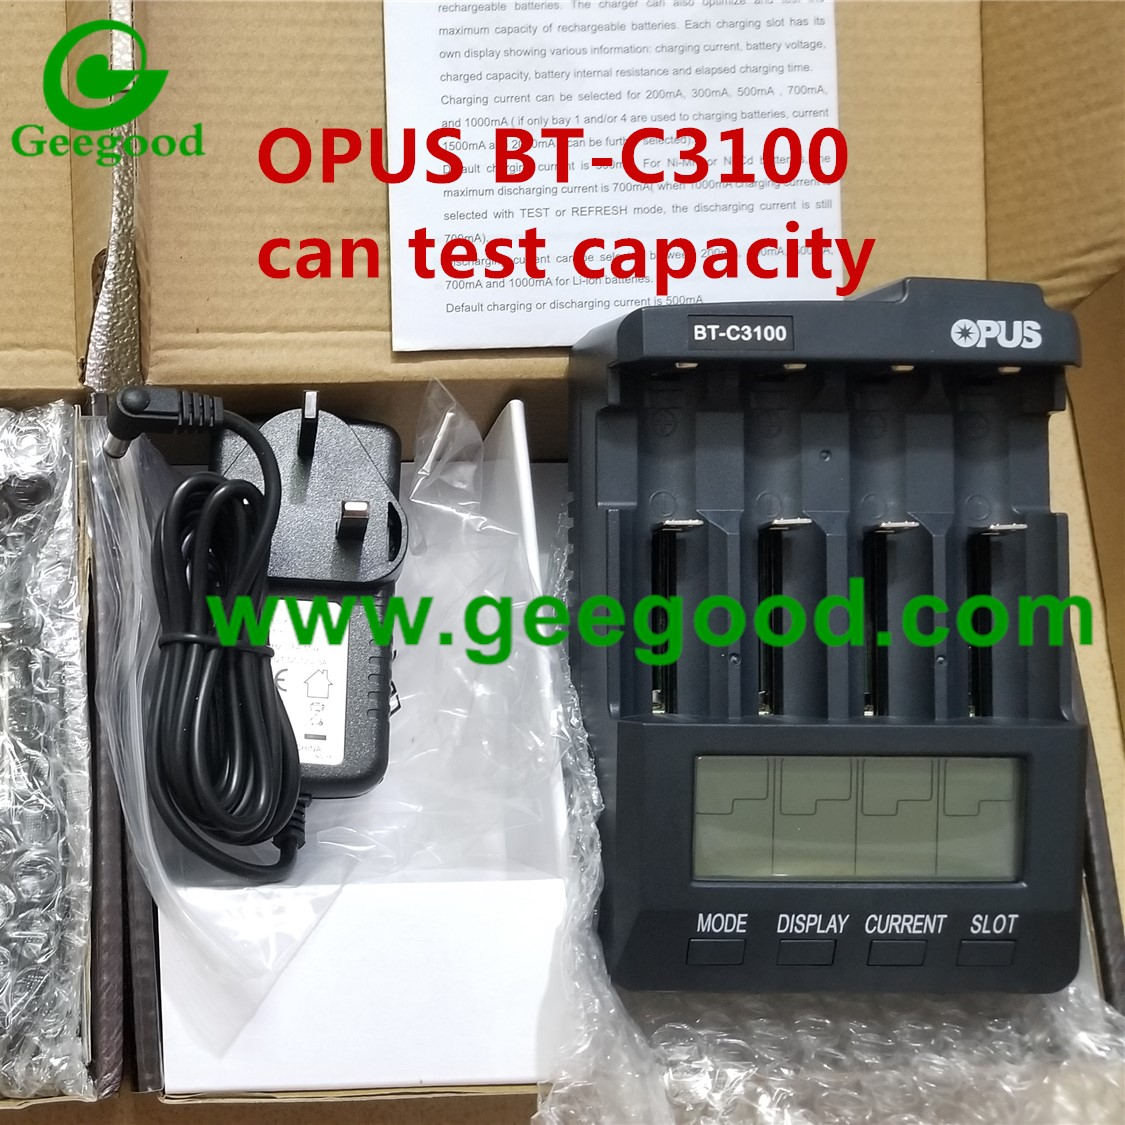 Test battery capacity charger OPUS BT-C3100 4 slot battery charger